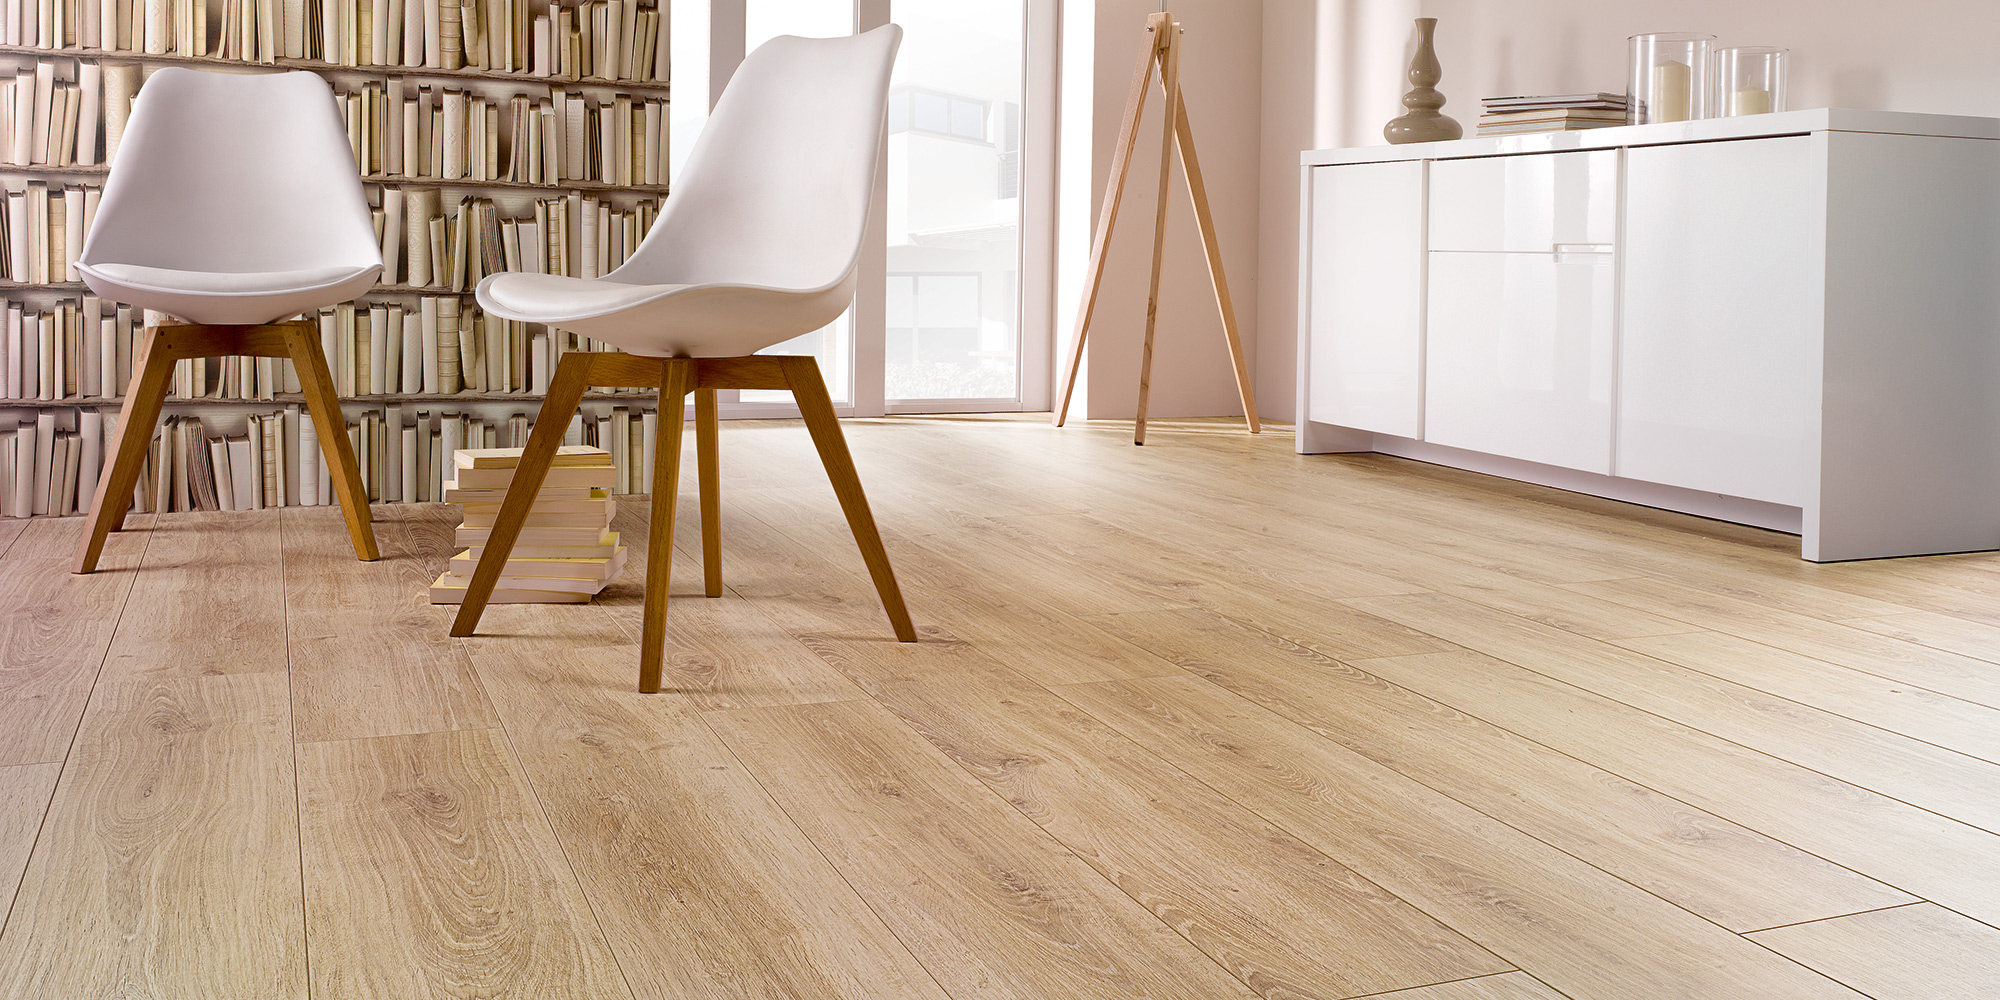 Solid / Solid Plus. 12mm oak look laminate flooring with the highest traffic abrasion resistance rating AC6.